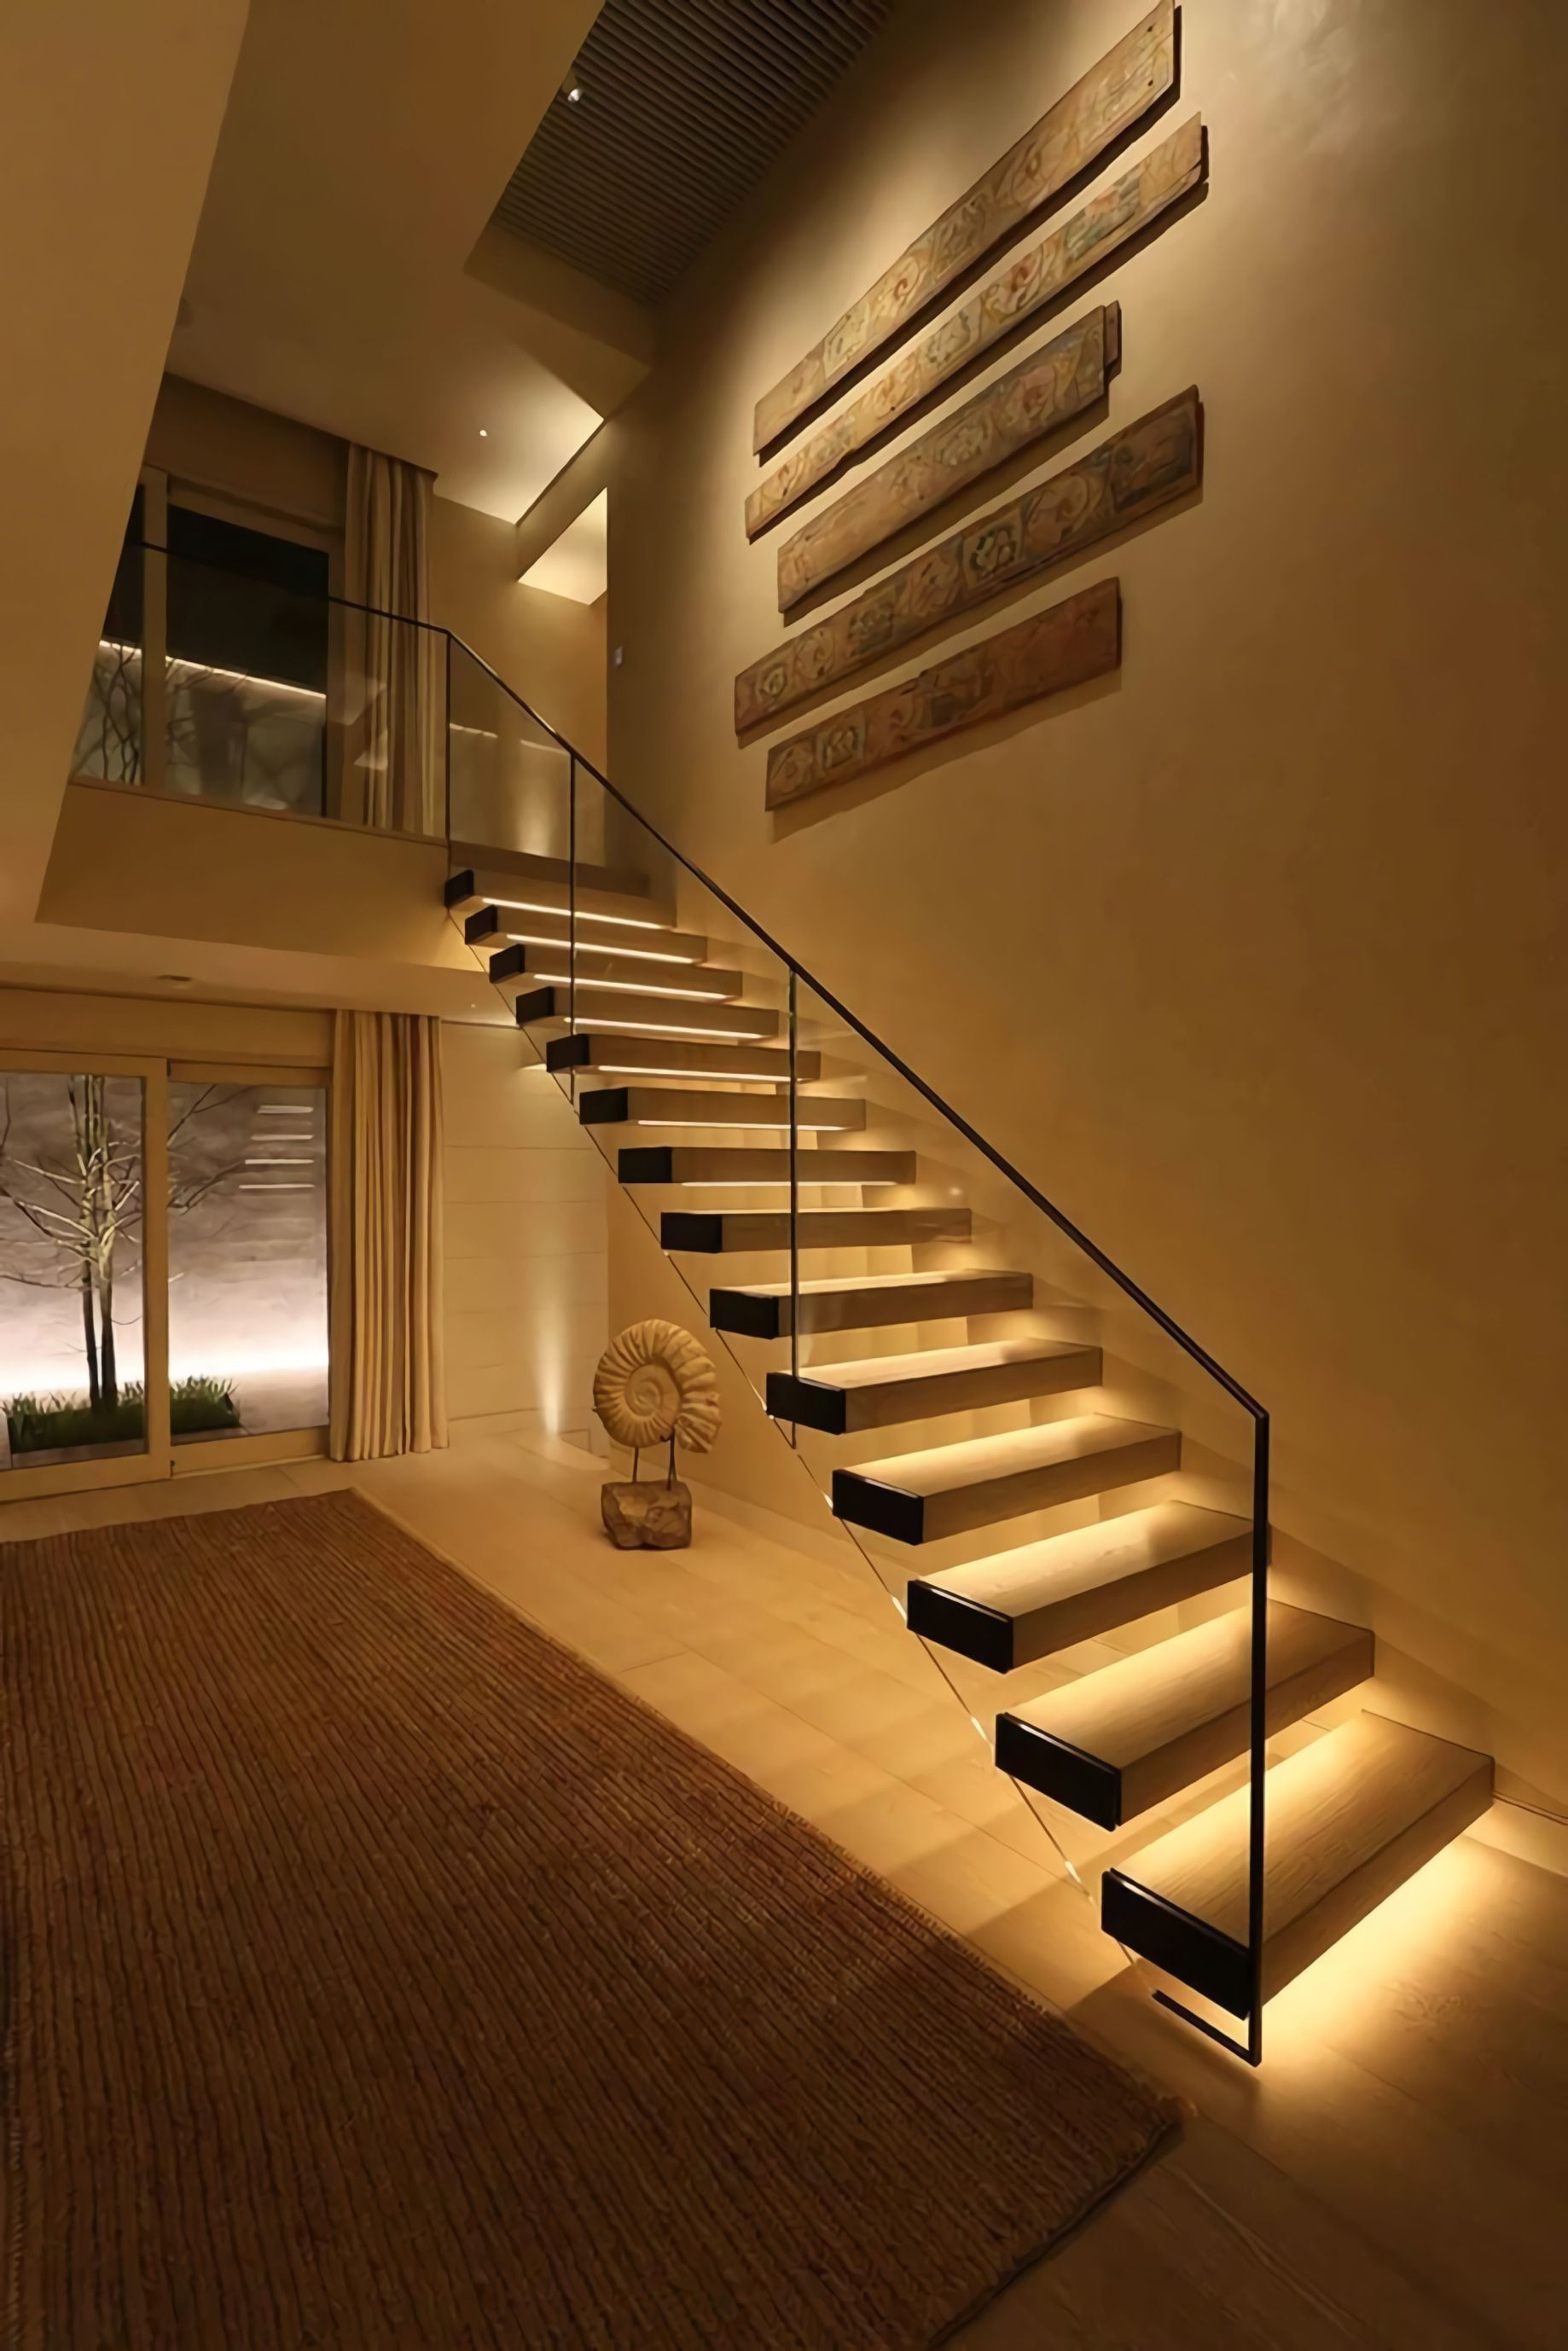 17 Light Stairs Ideas You Can Start